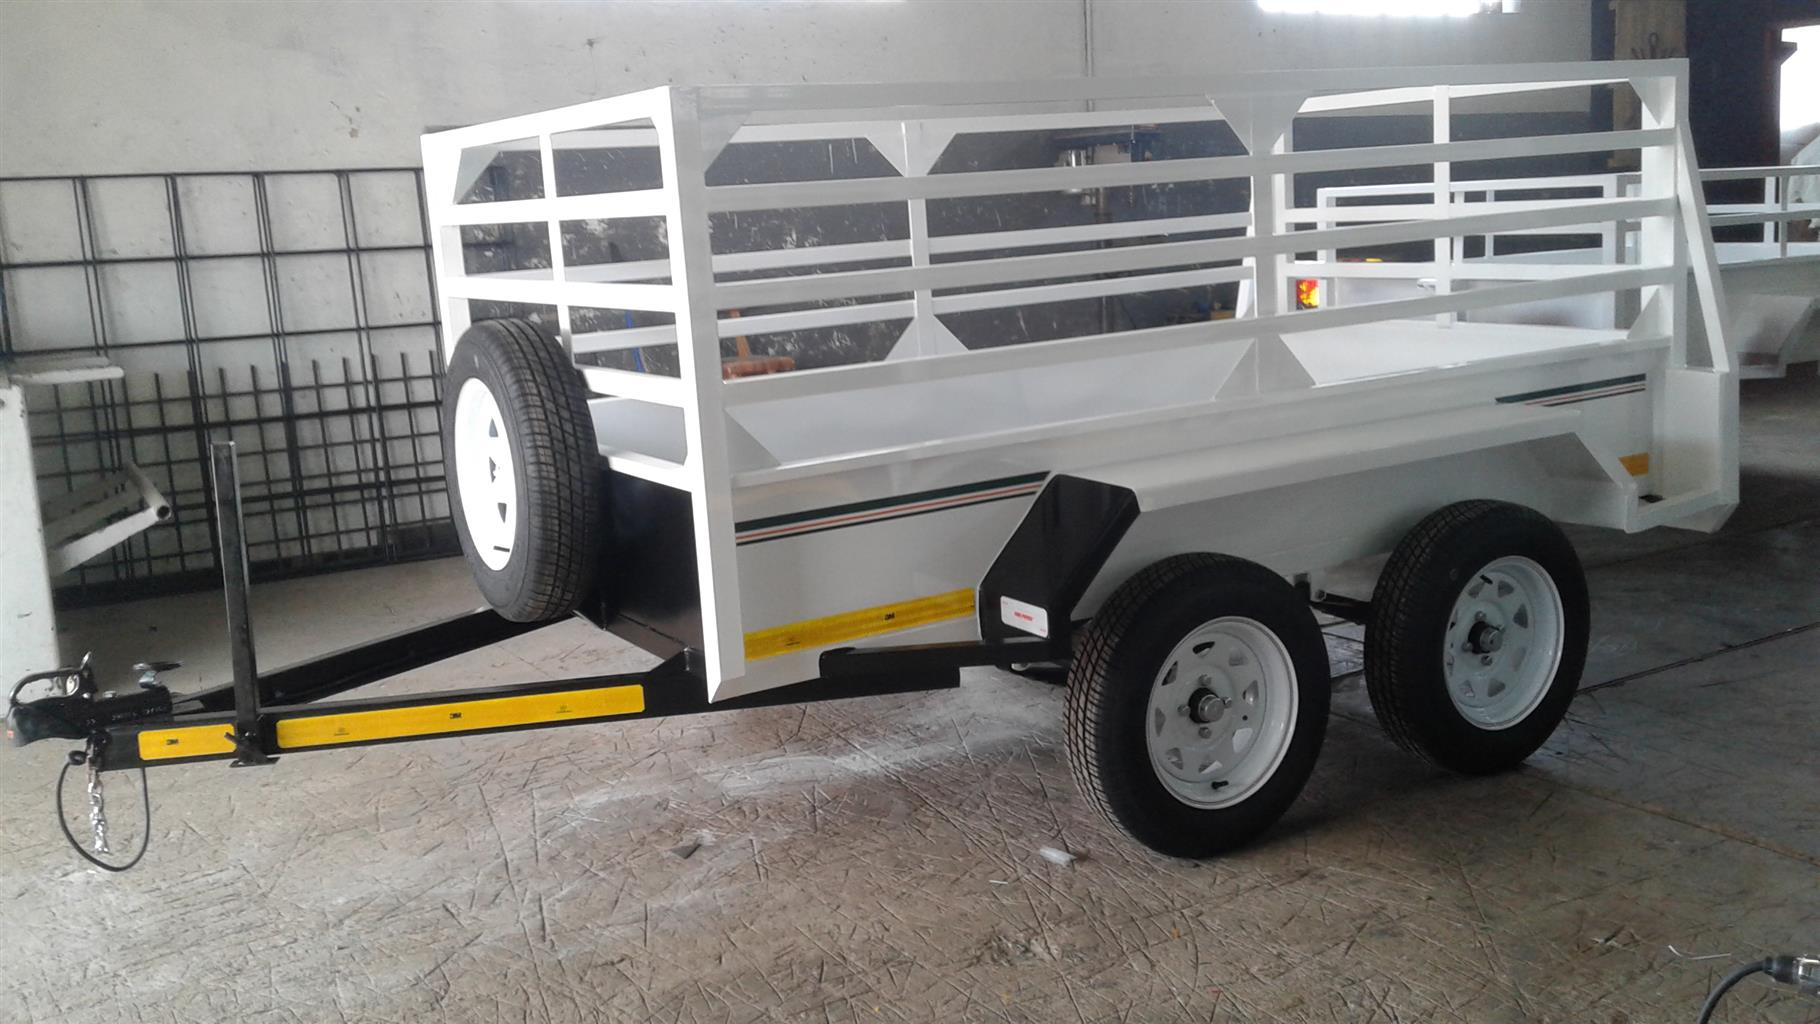 DOUBLE AXLE TRAILER FOR SALE PAPERS INCL